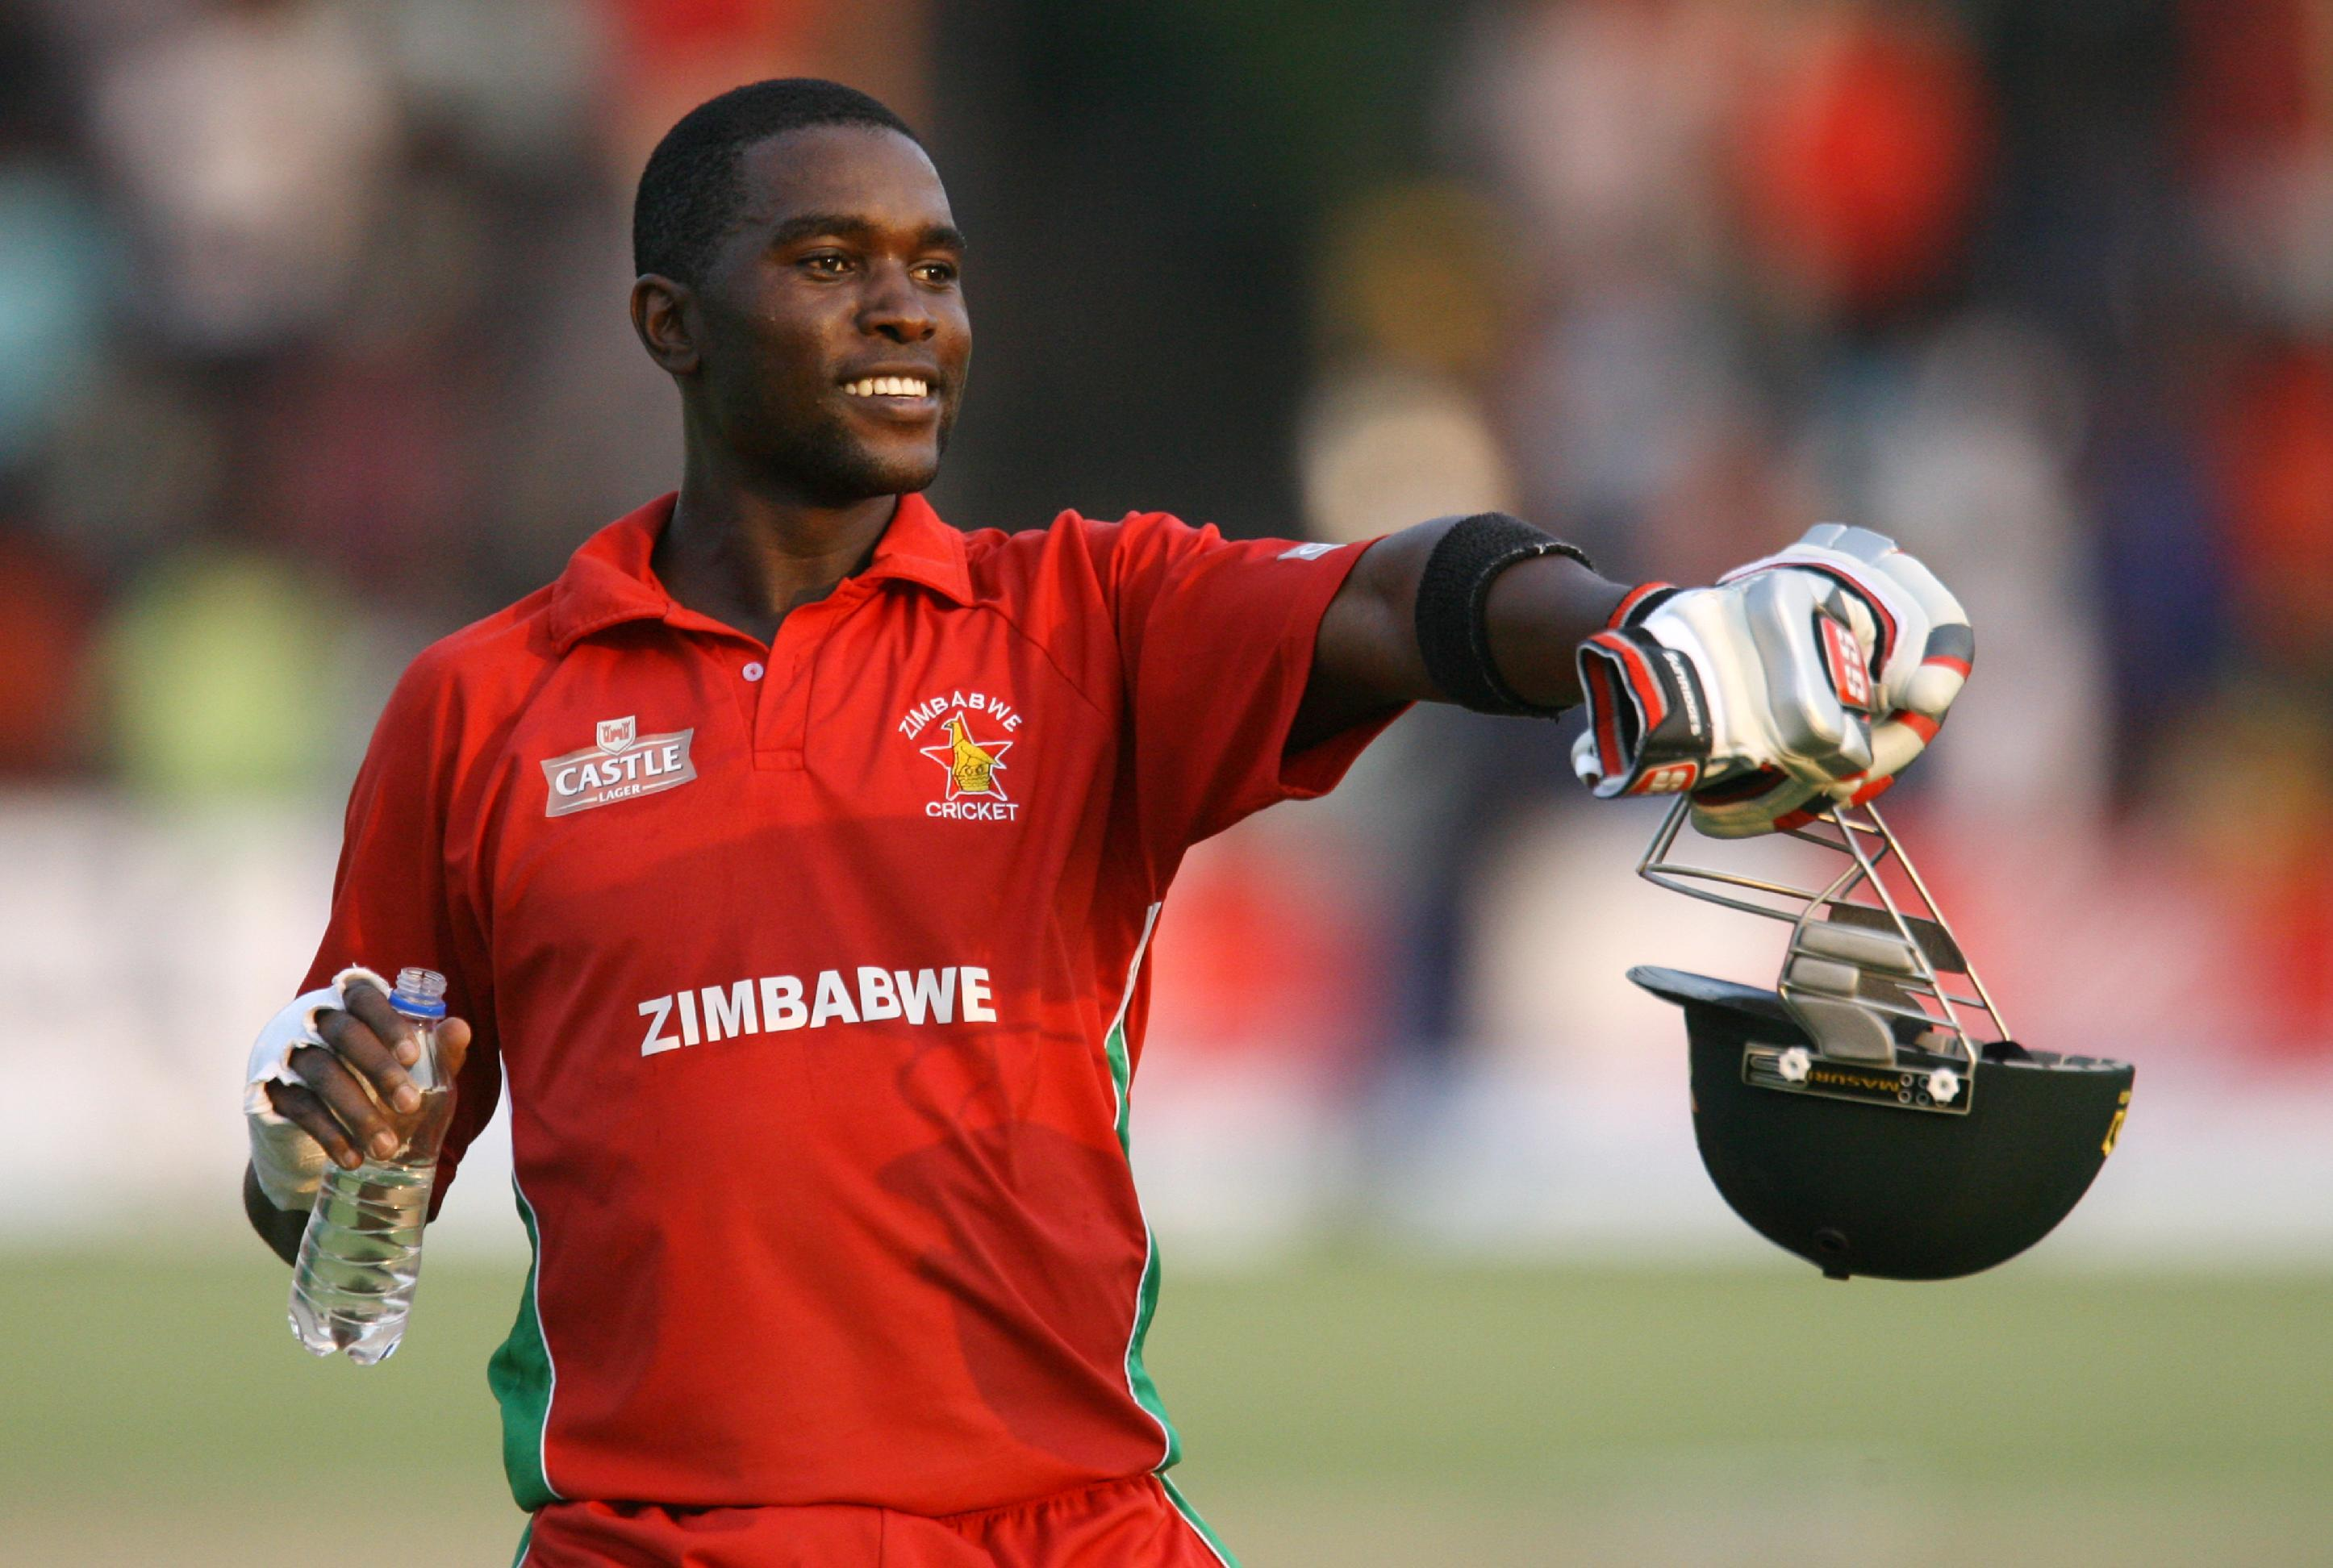 Zimbabwe pack up their problems at cricket World Cup